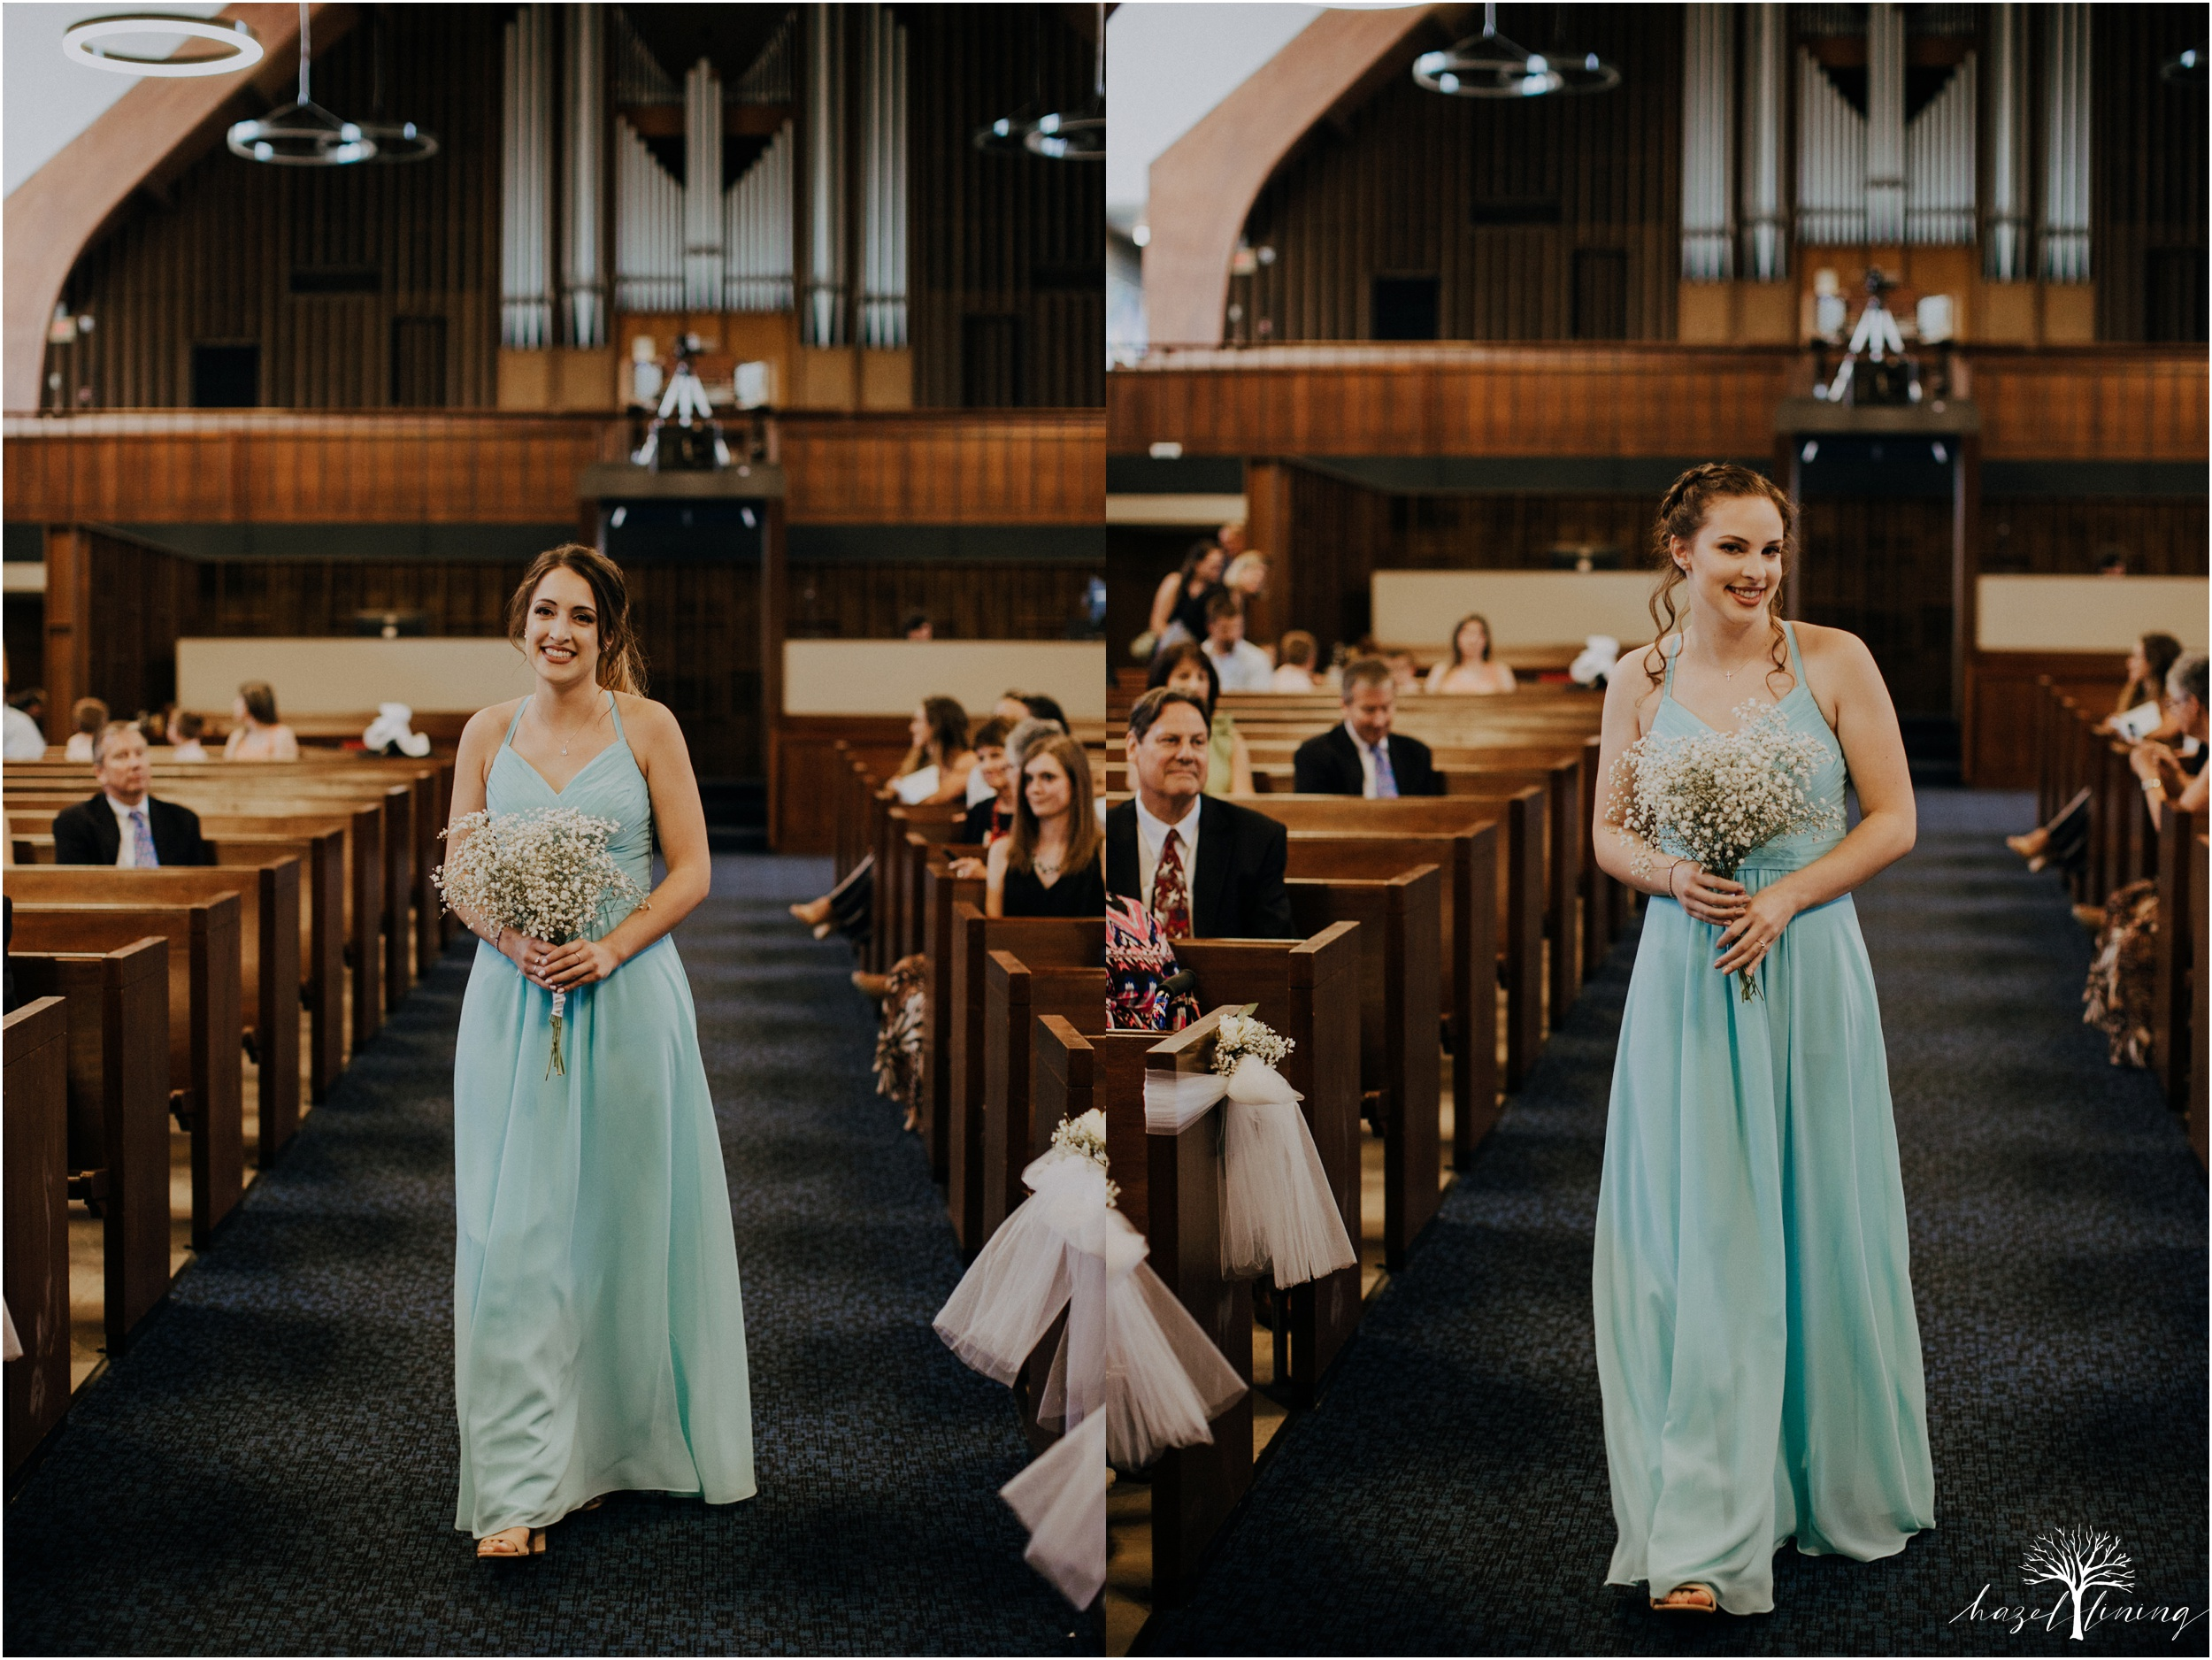 laura-zach-mccaskill-harmony-hall-lebanon-valley-college-summer-wedding-hazel-lining-photography-destination-elopement-wedding-engagement-photography_0051.jpg